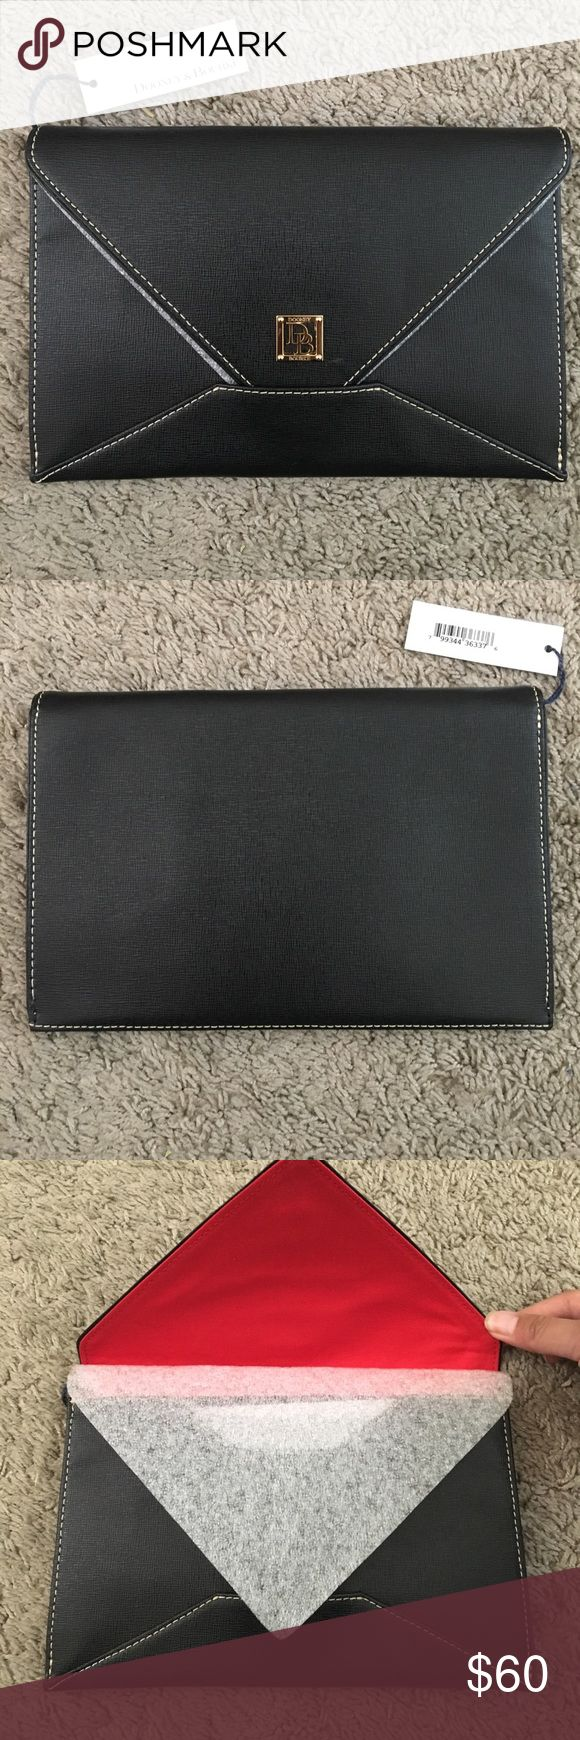 """NWT Dooney & Bourke Envelope Clutch - Sz OS NWT Dooney & Bourke Envelope Clutch - Sz OS. Black leather. Red interior. L 9"""", W 6"""", D 0.25"""". Never worn, original tags attached with interior liner. Gorgeous, classy piece! Dooney & Bourke Bags Clutches & Wristlets"""